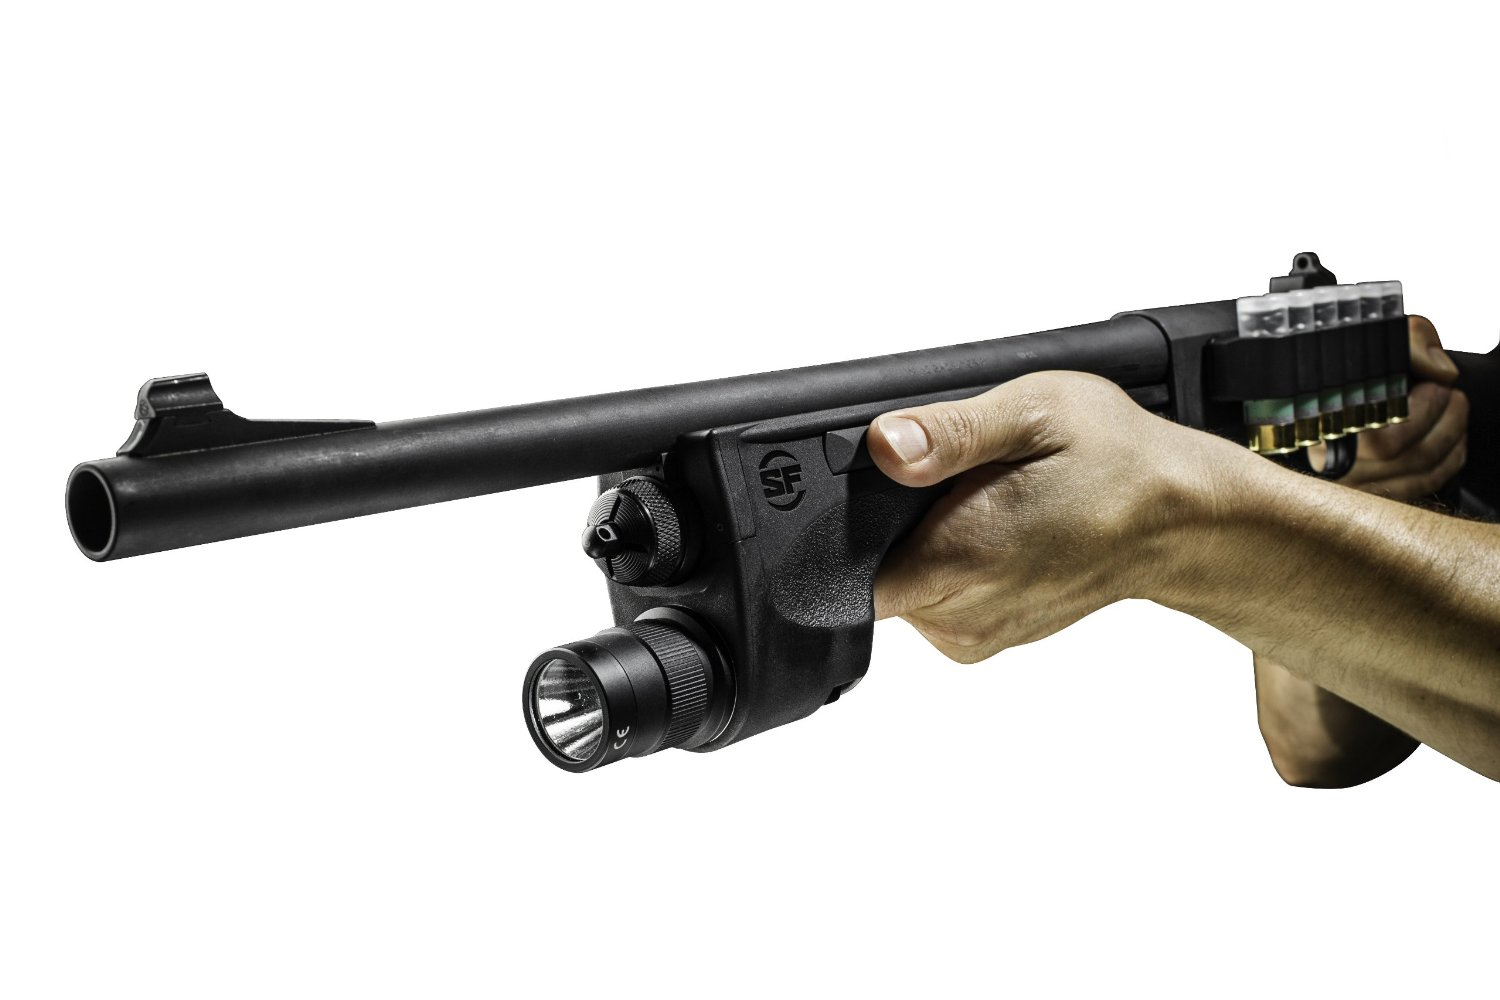 Surefire Dsf 870 Accessories News All4shooters Com